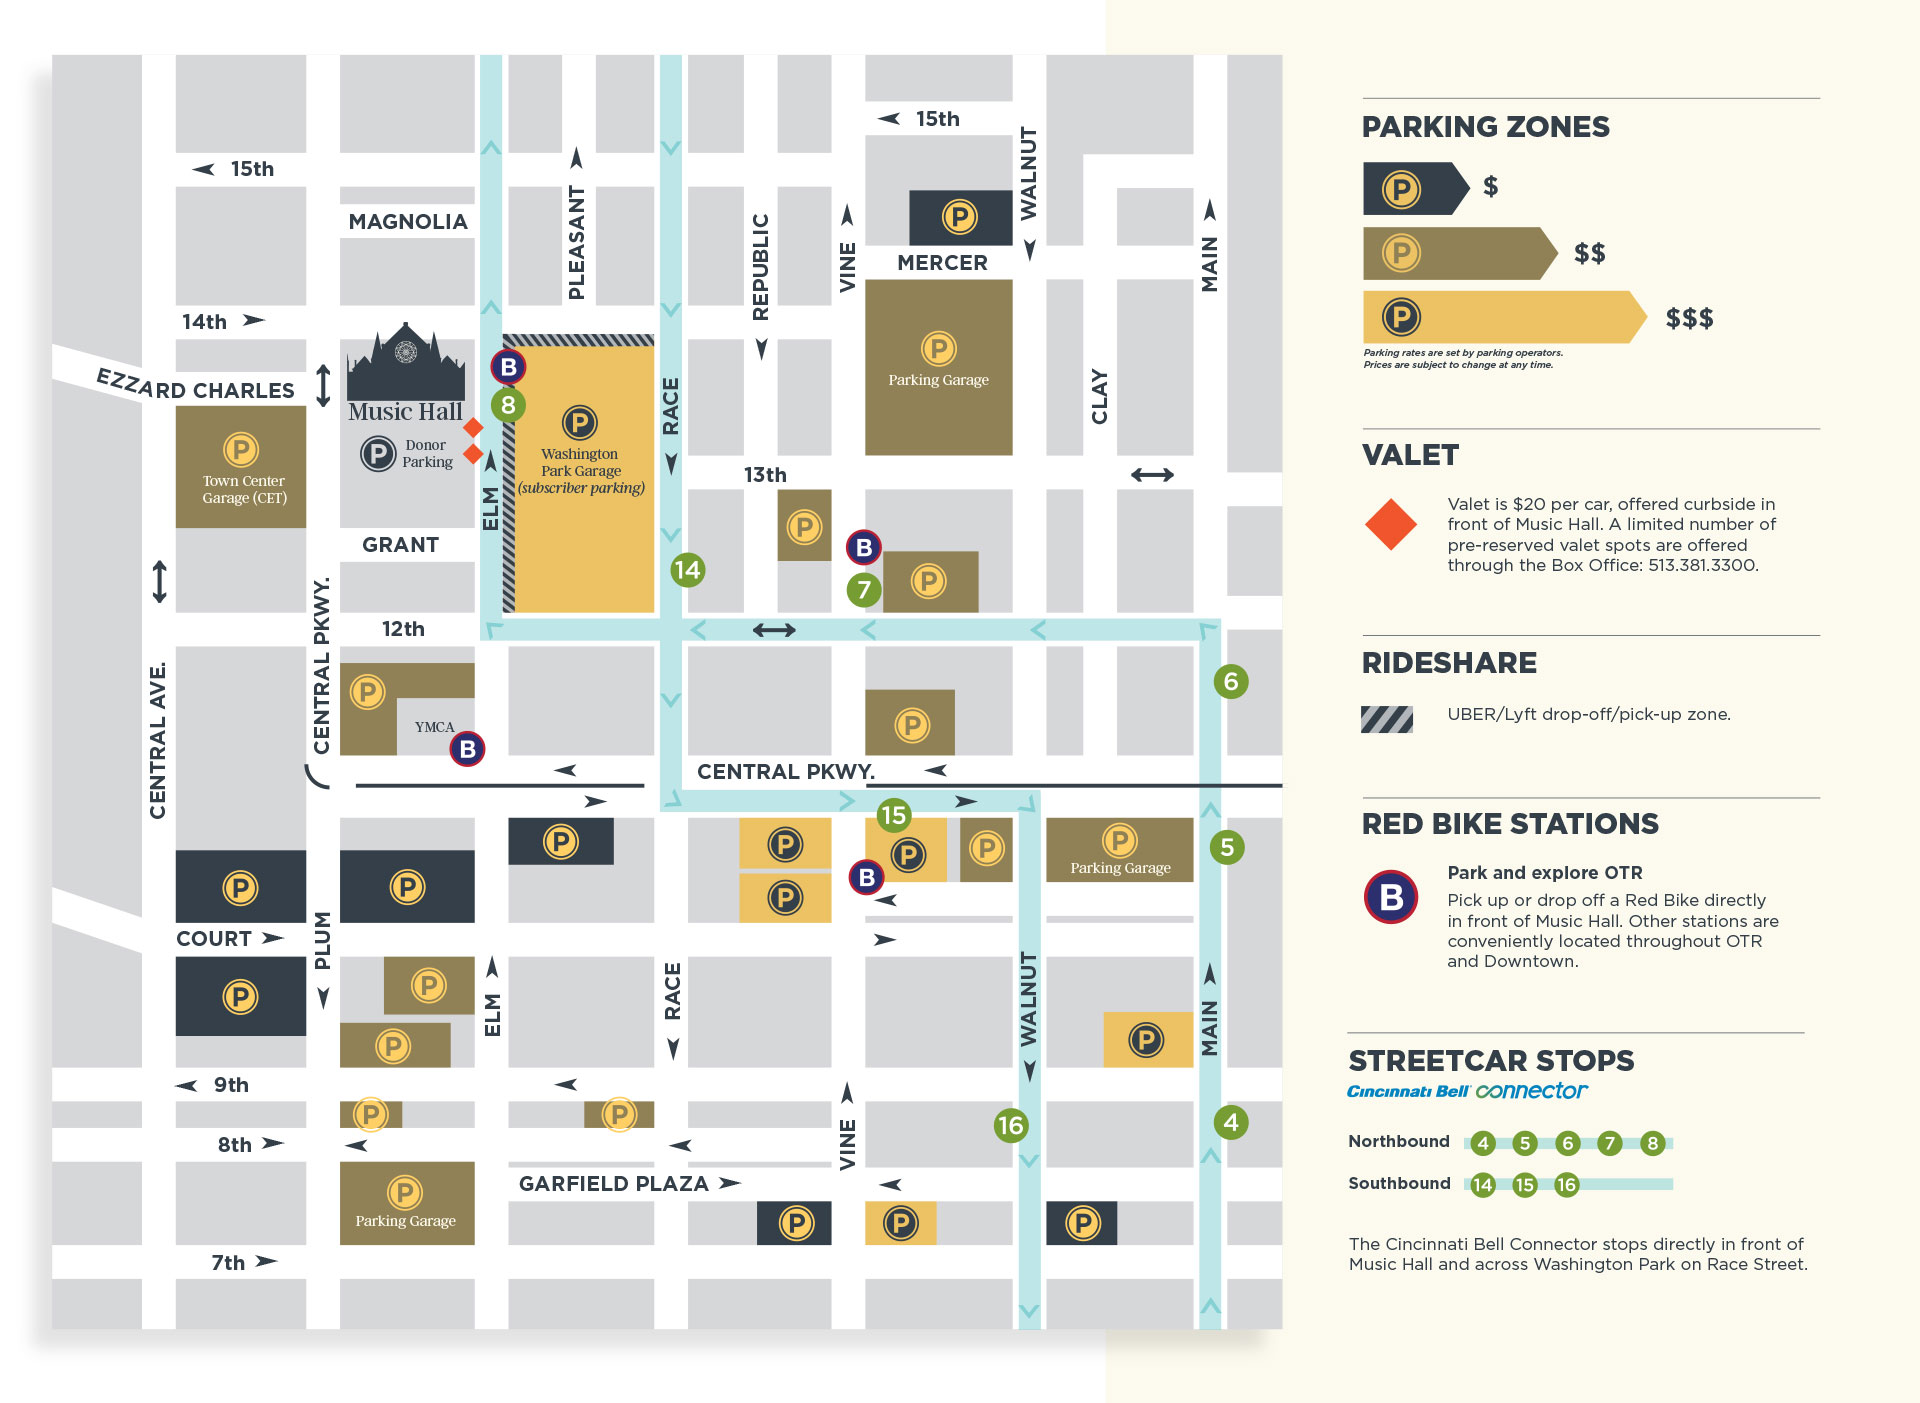 Map of parking options around Music Hall